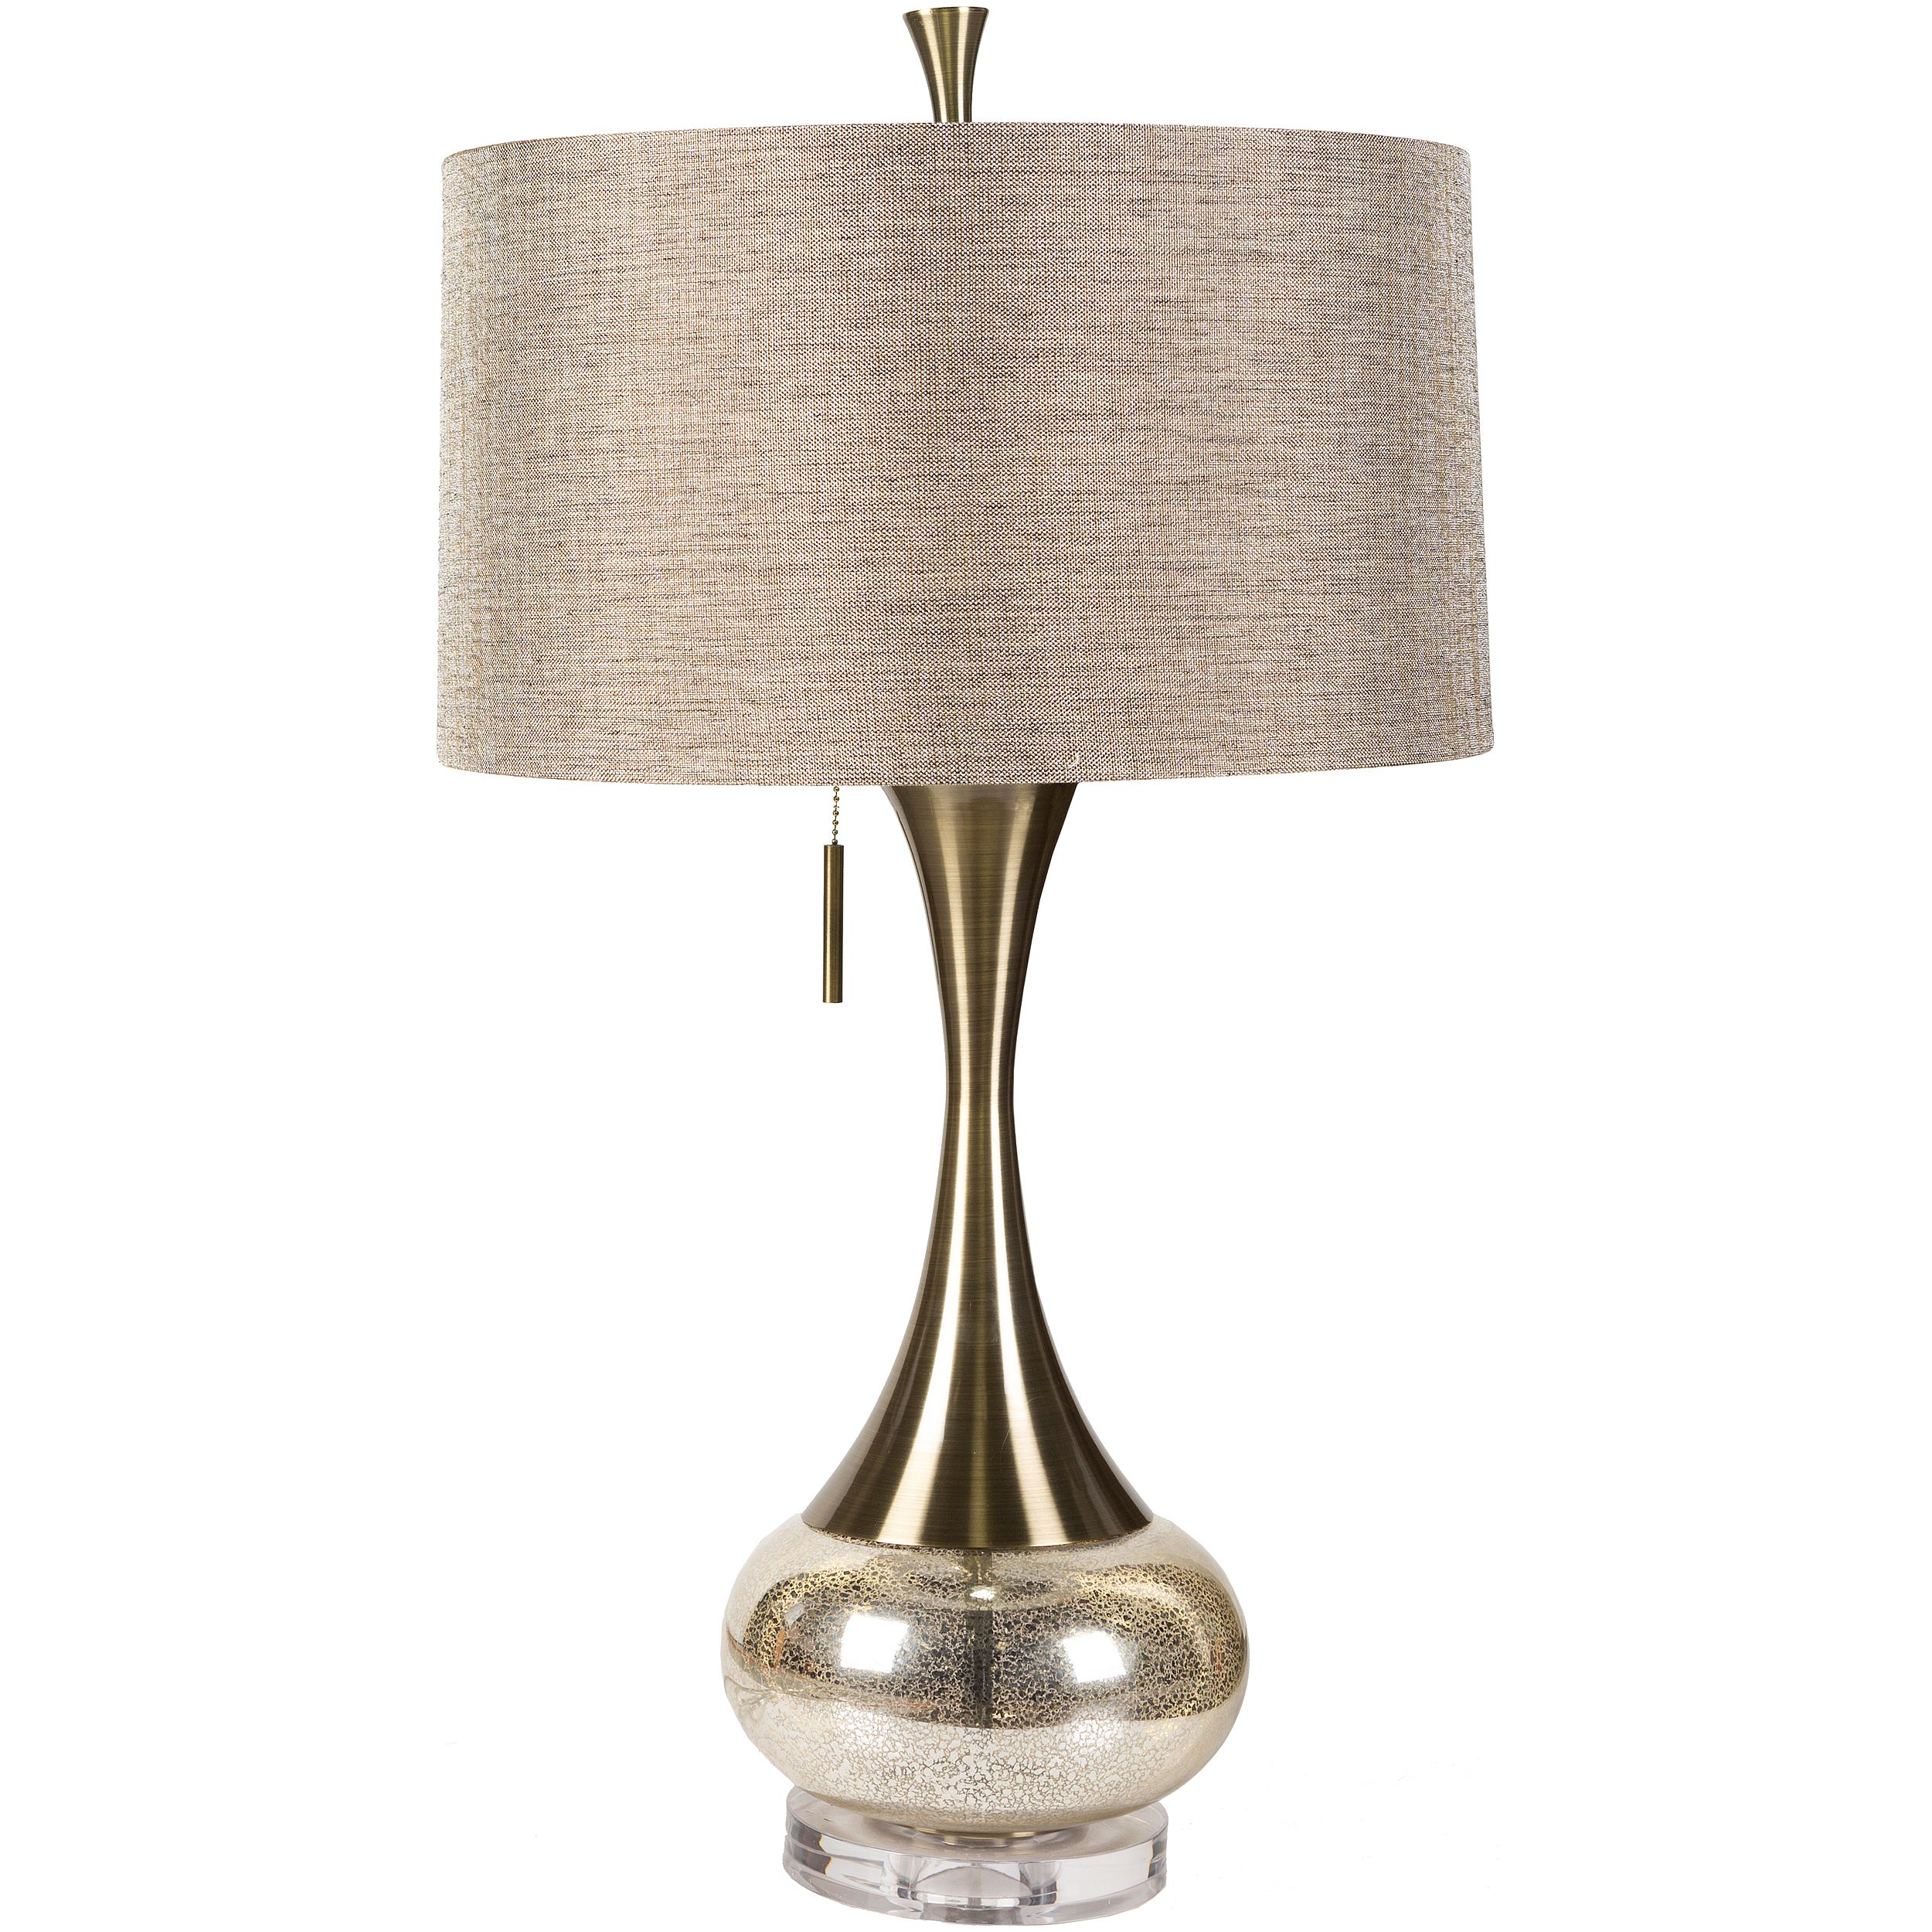 Sure to sparkle in any space this luxurious table lamp will create sure to sparkle in any space this luxurious table lamp will create an exquisite look mozeypictures Gallery